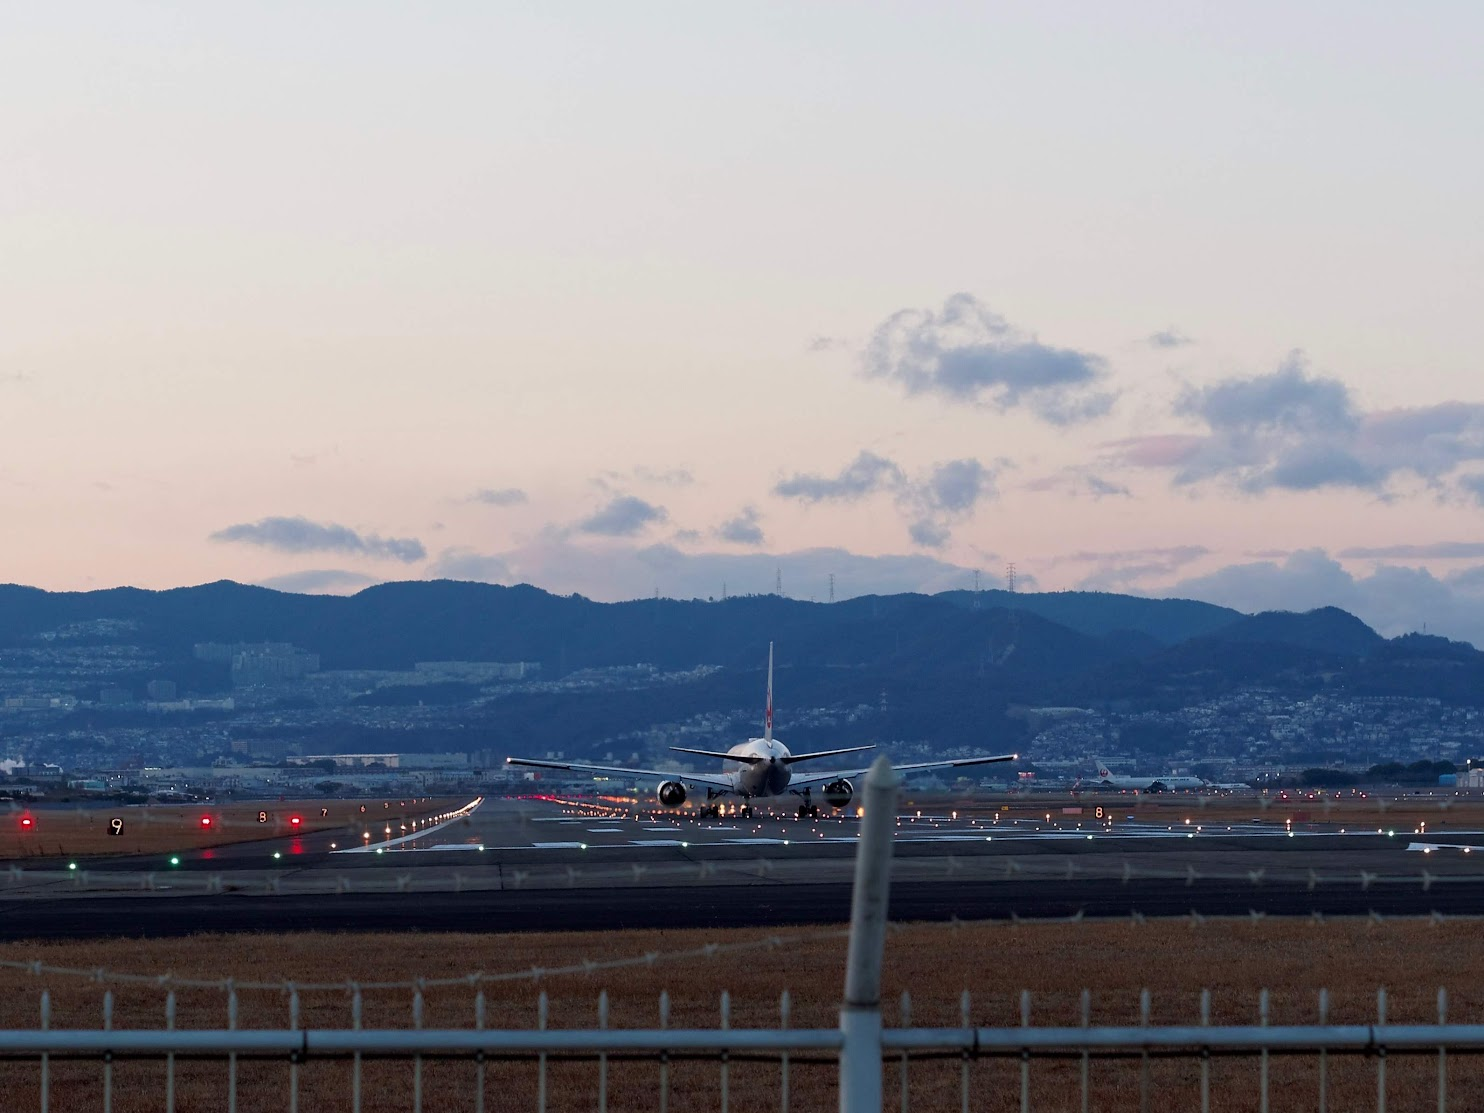 Osaka (Itami) International Airport